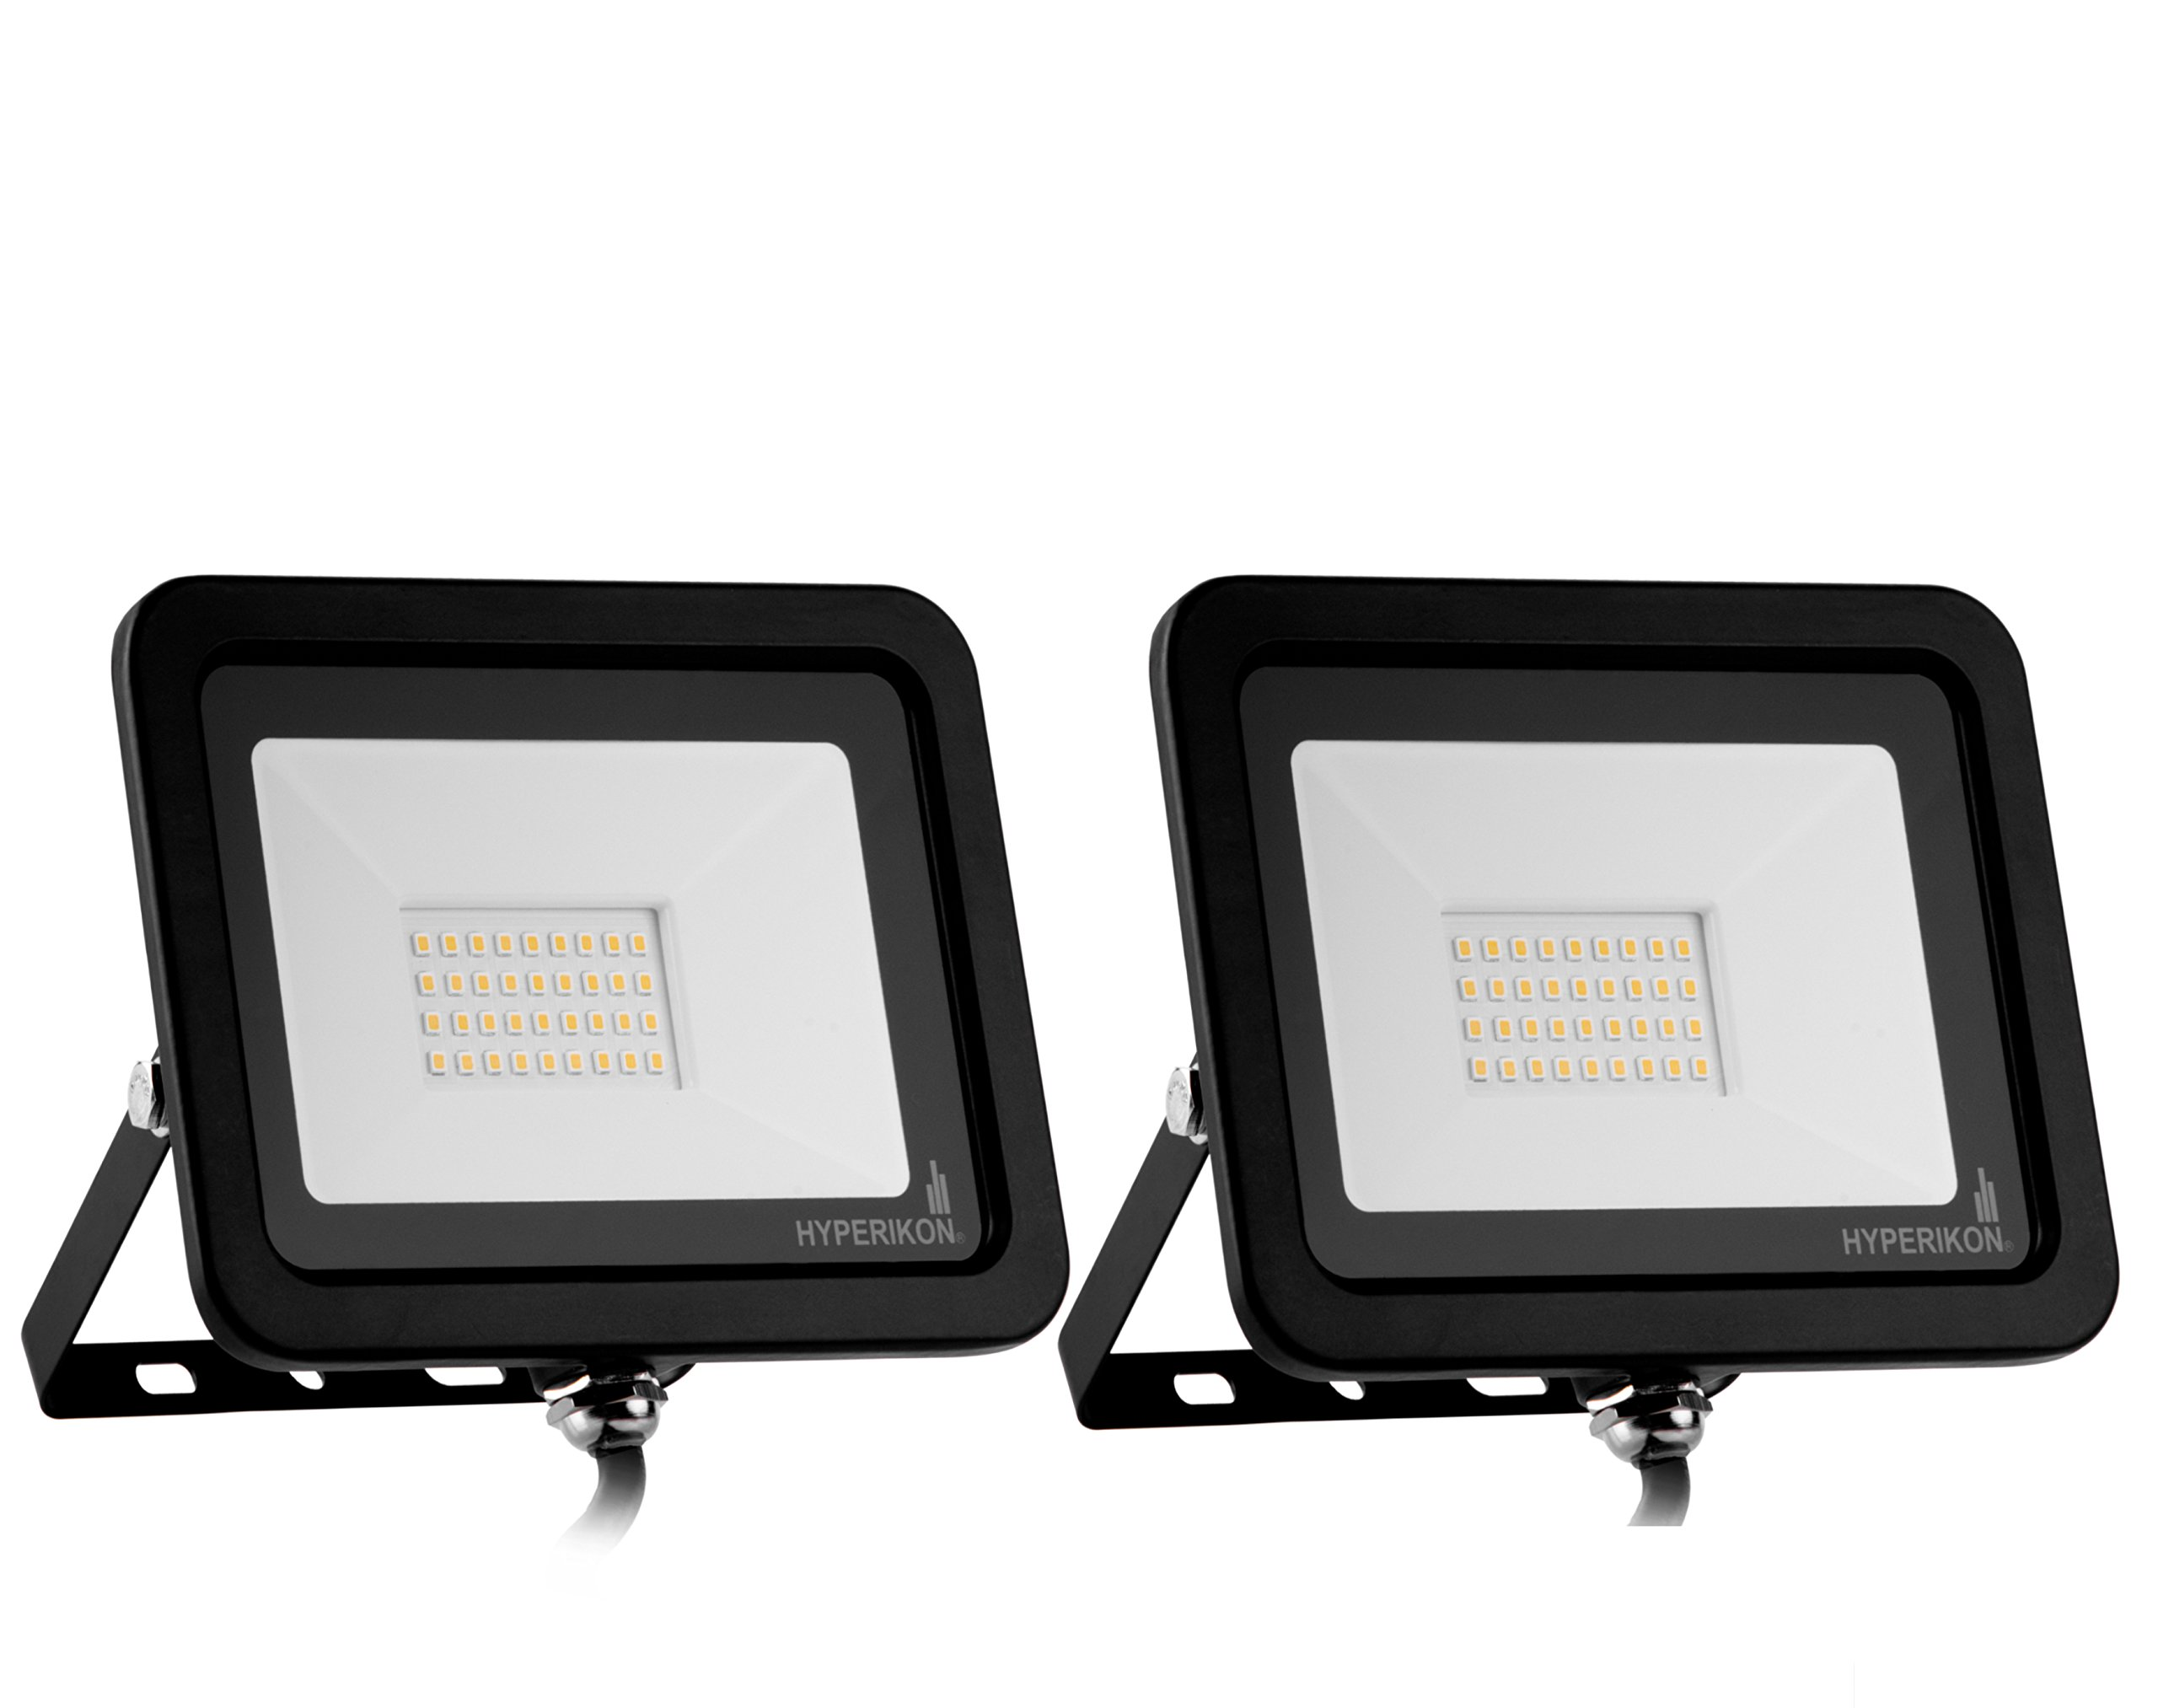 Hyperikon 30W LED Flood Light with 180° Rotatable Bracket, 5000k, 2400 Lumens, Super Bright Outdoor LED Floodlight, Weatherproof IP65, UL Suitable for Dry and Damp Locations, 110V, 2-Pack